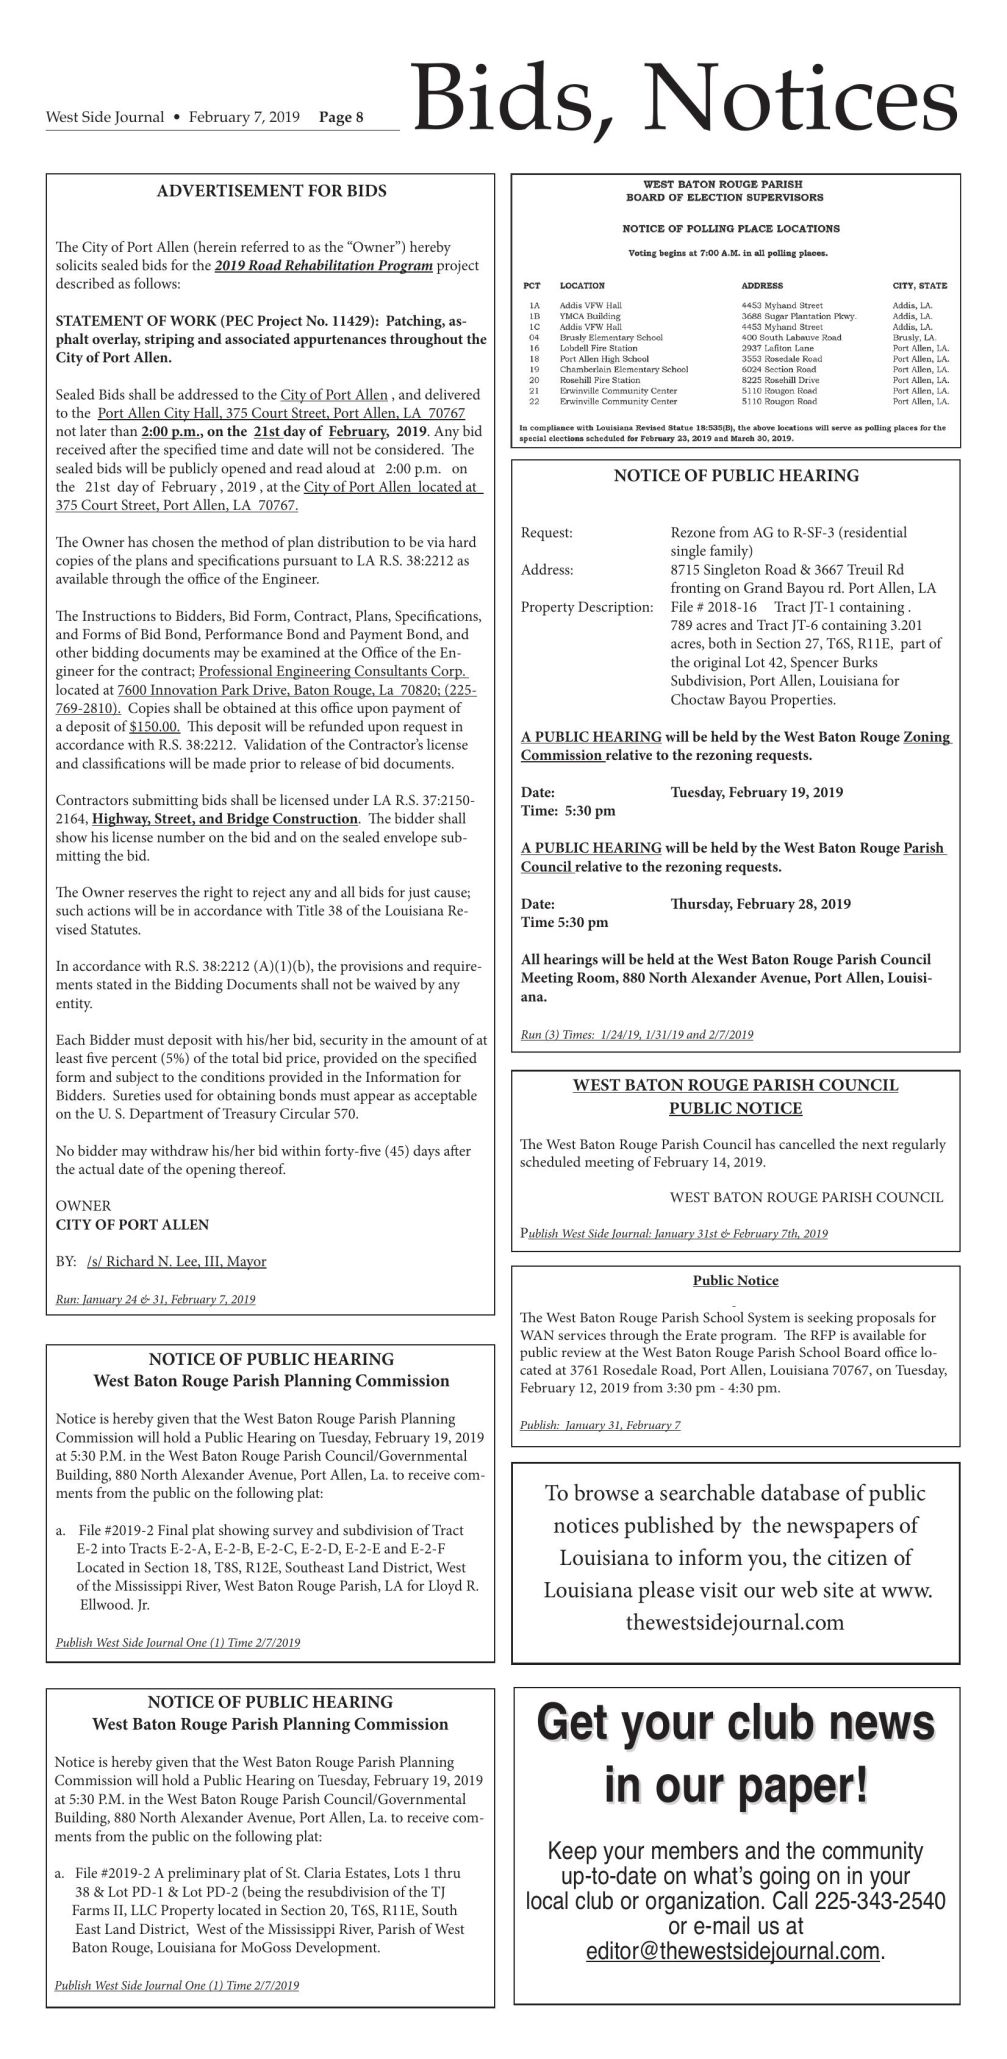 Bids and notices 02.07.19